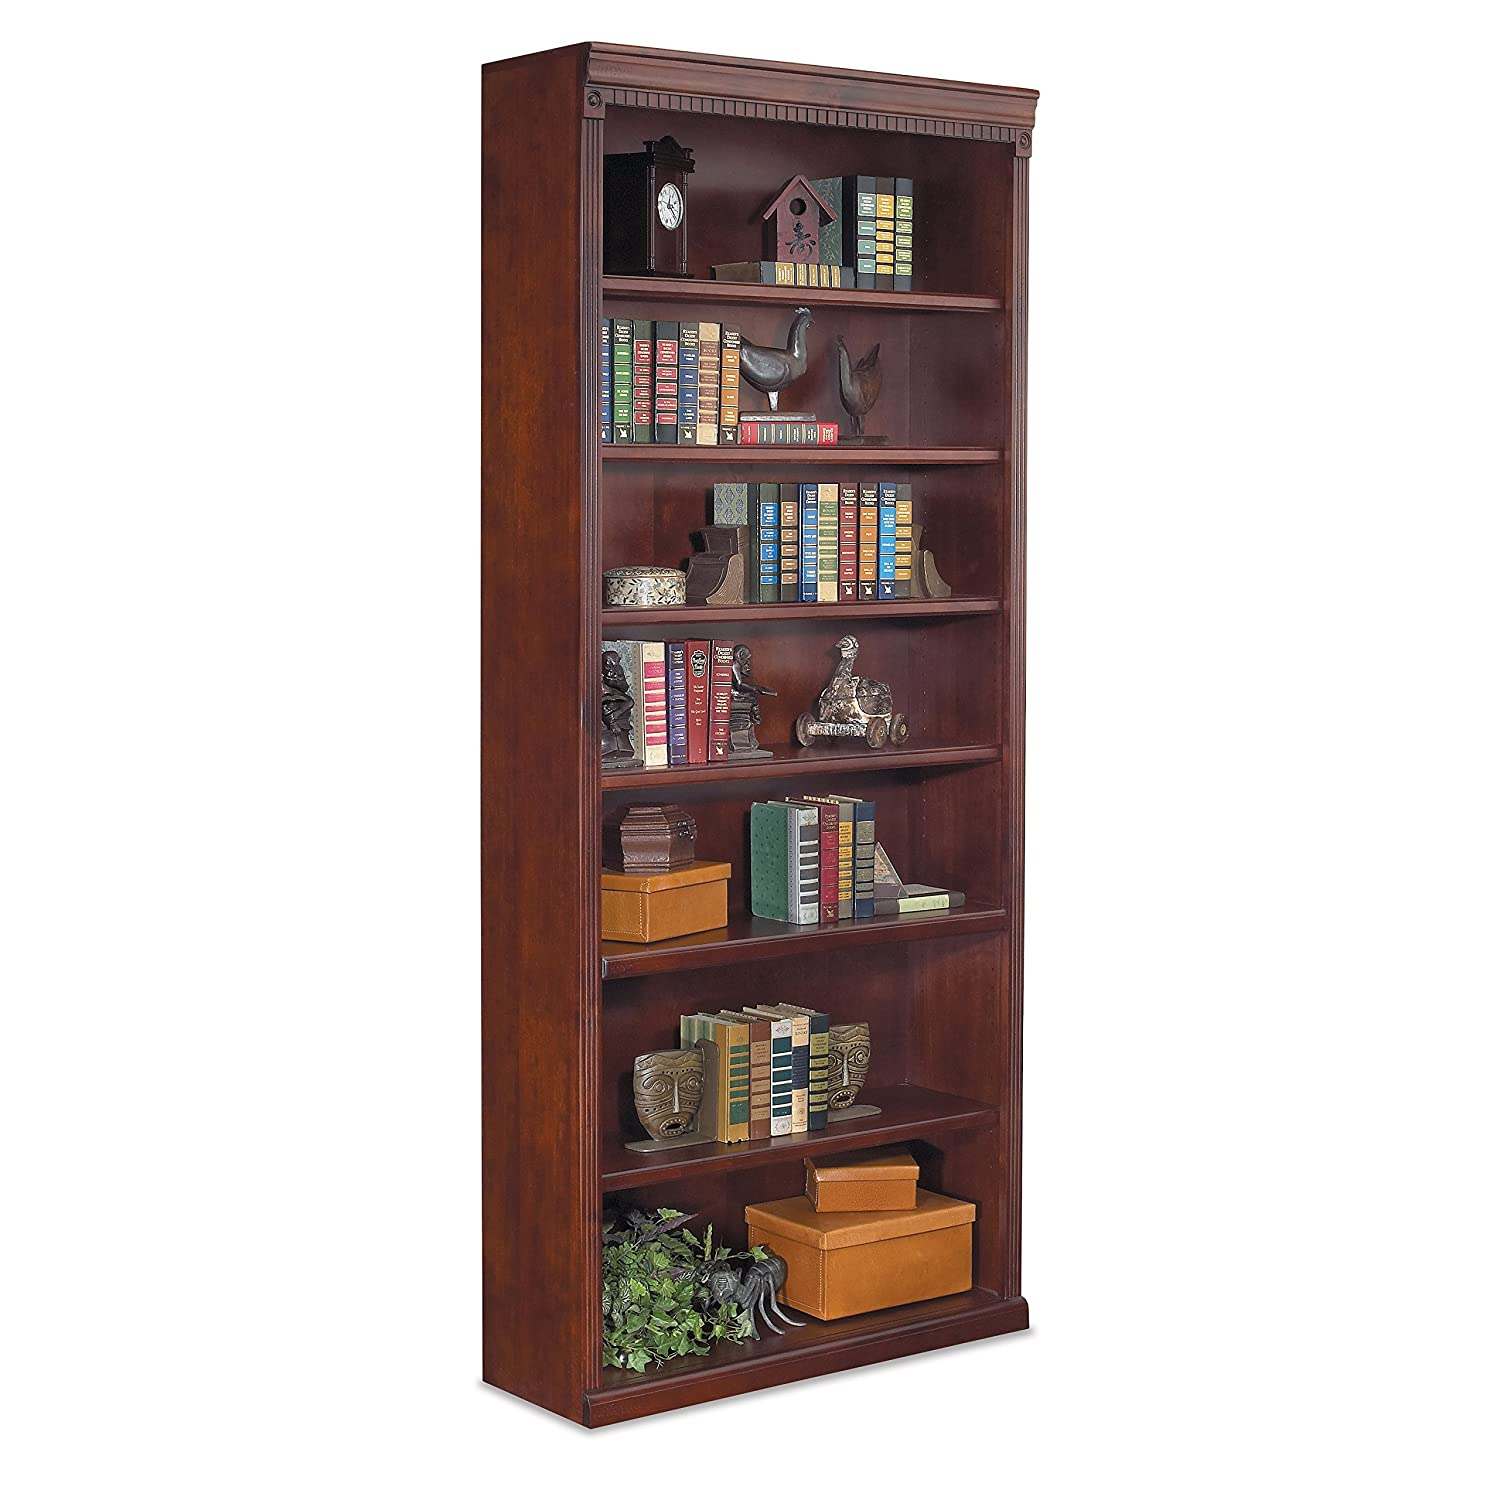 folding oak honey cfm bookcase corner hayneedle master product tier open